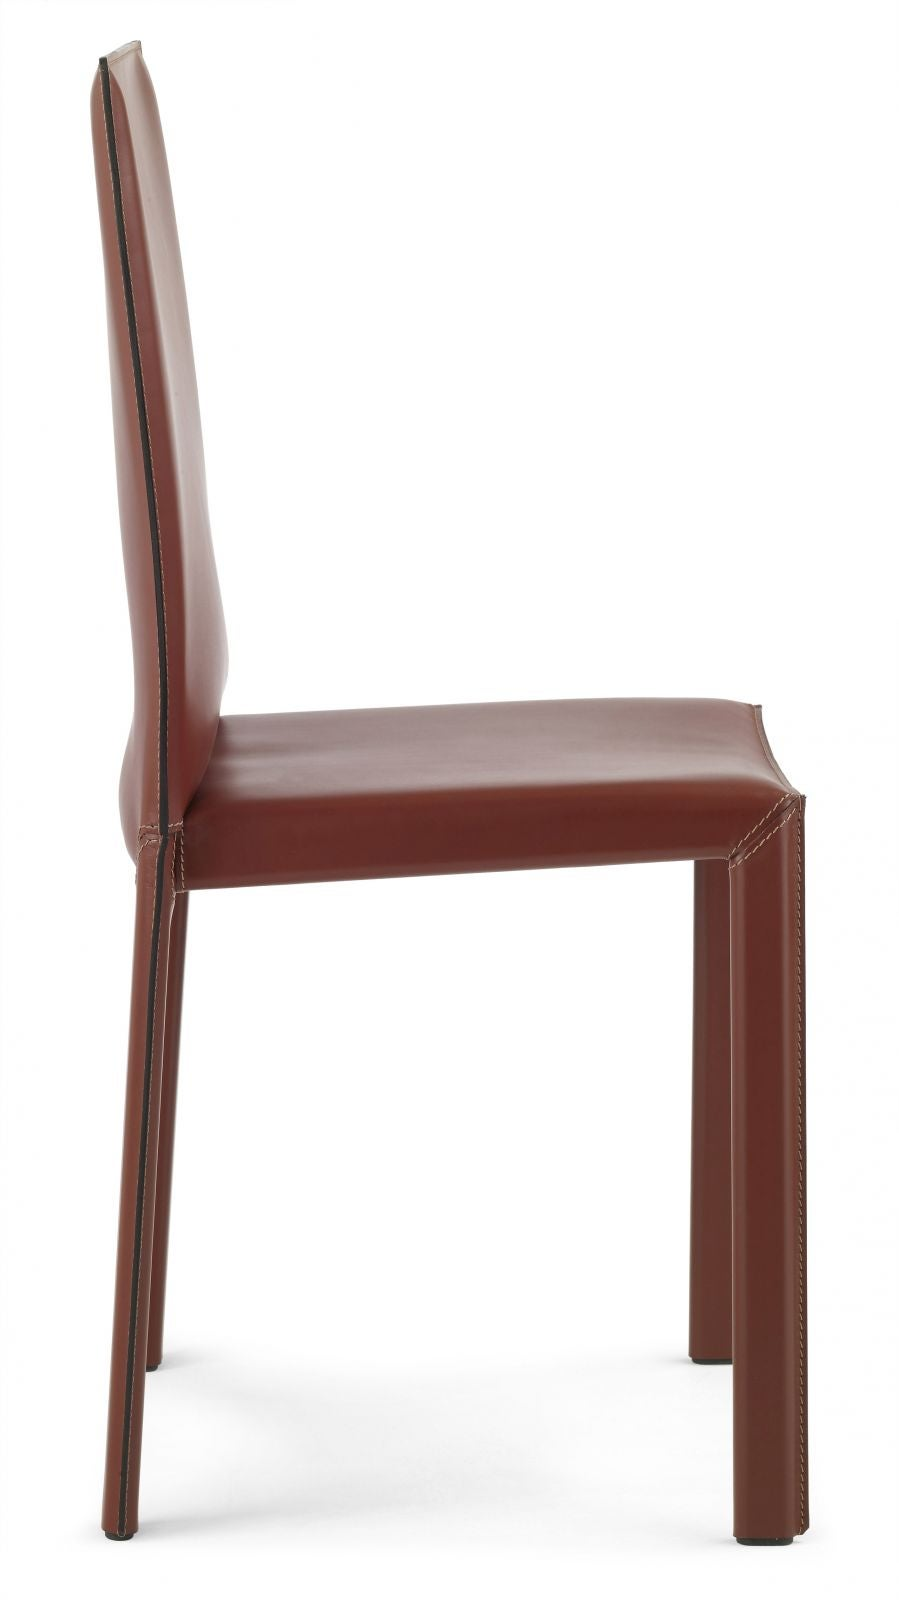 leather chair modern kneeling office italian dining chairs with high back made in italy for sale at 1stdibs